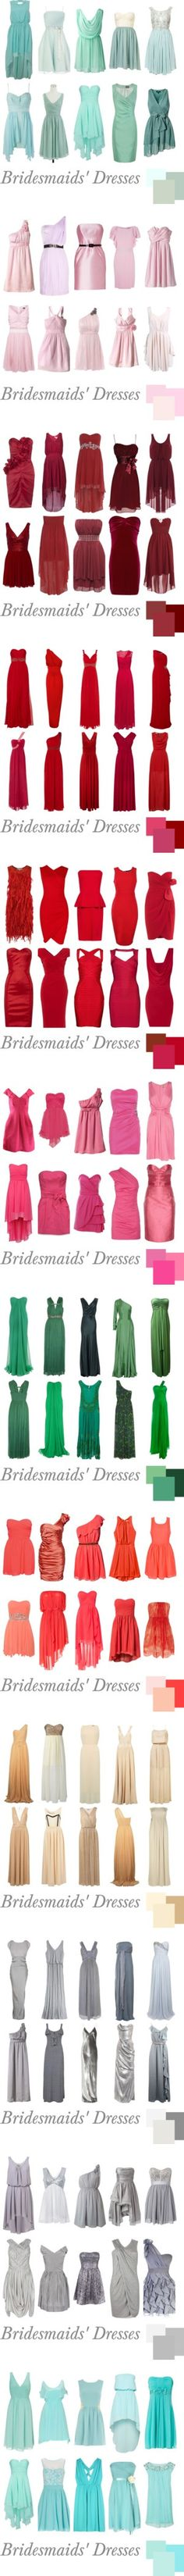 Bridesmaids dresses – a veery long list – different colors, different styles.